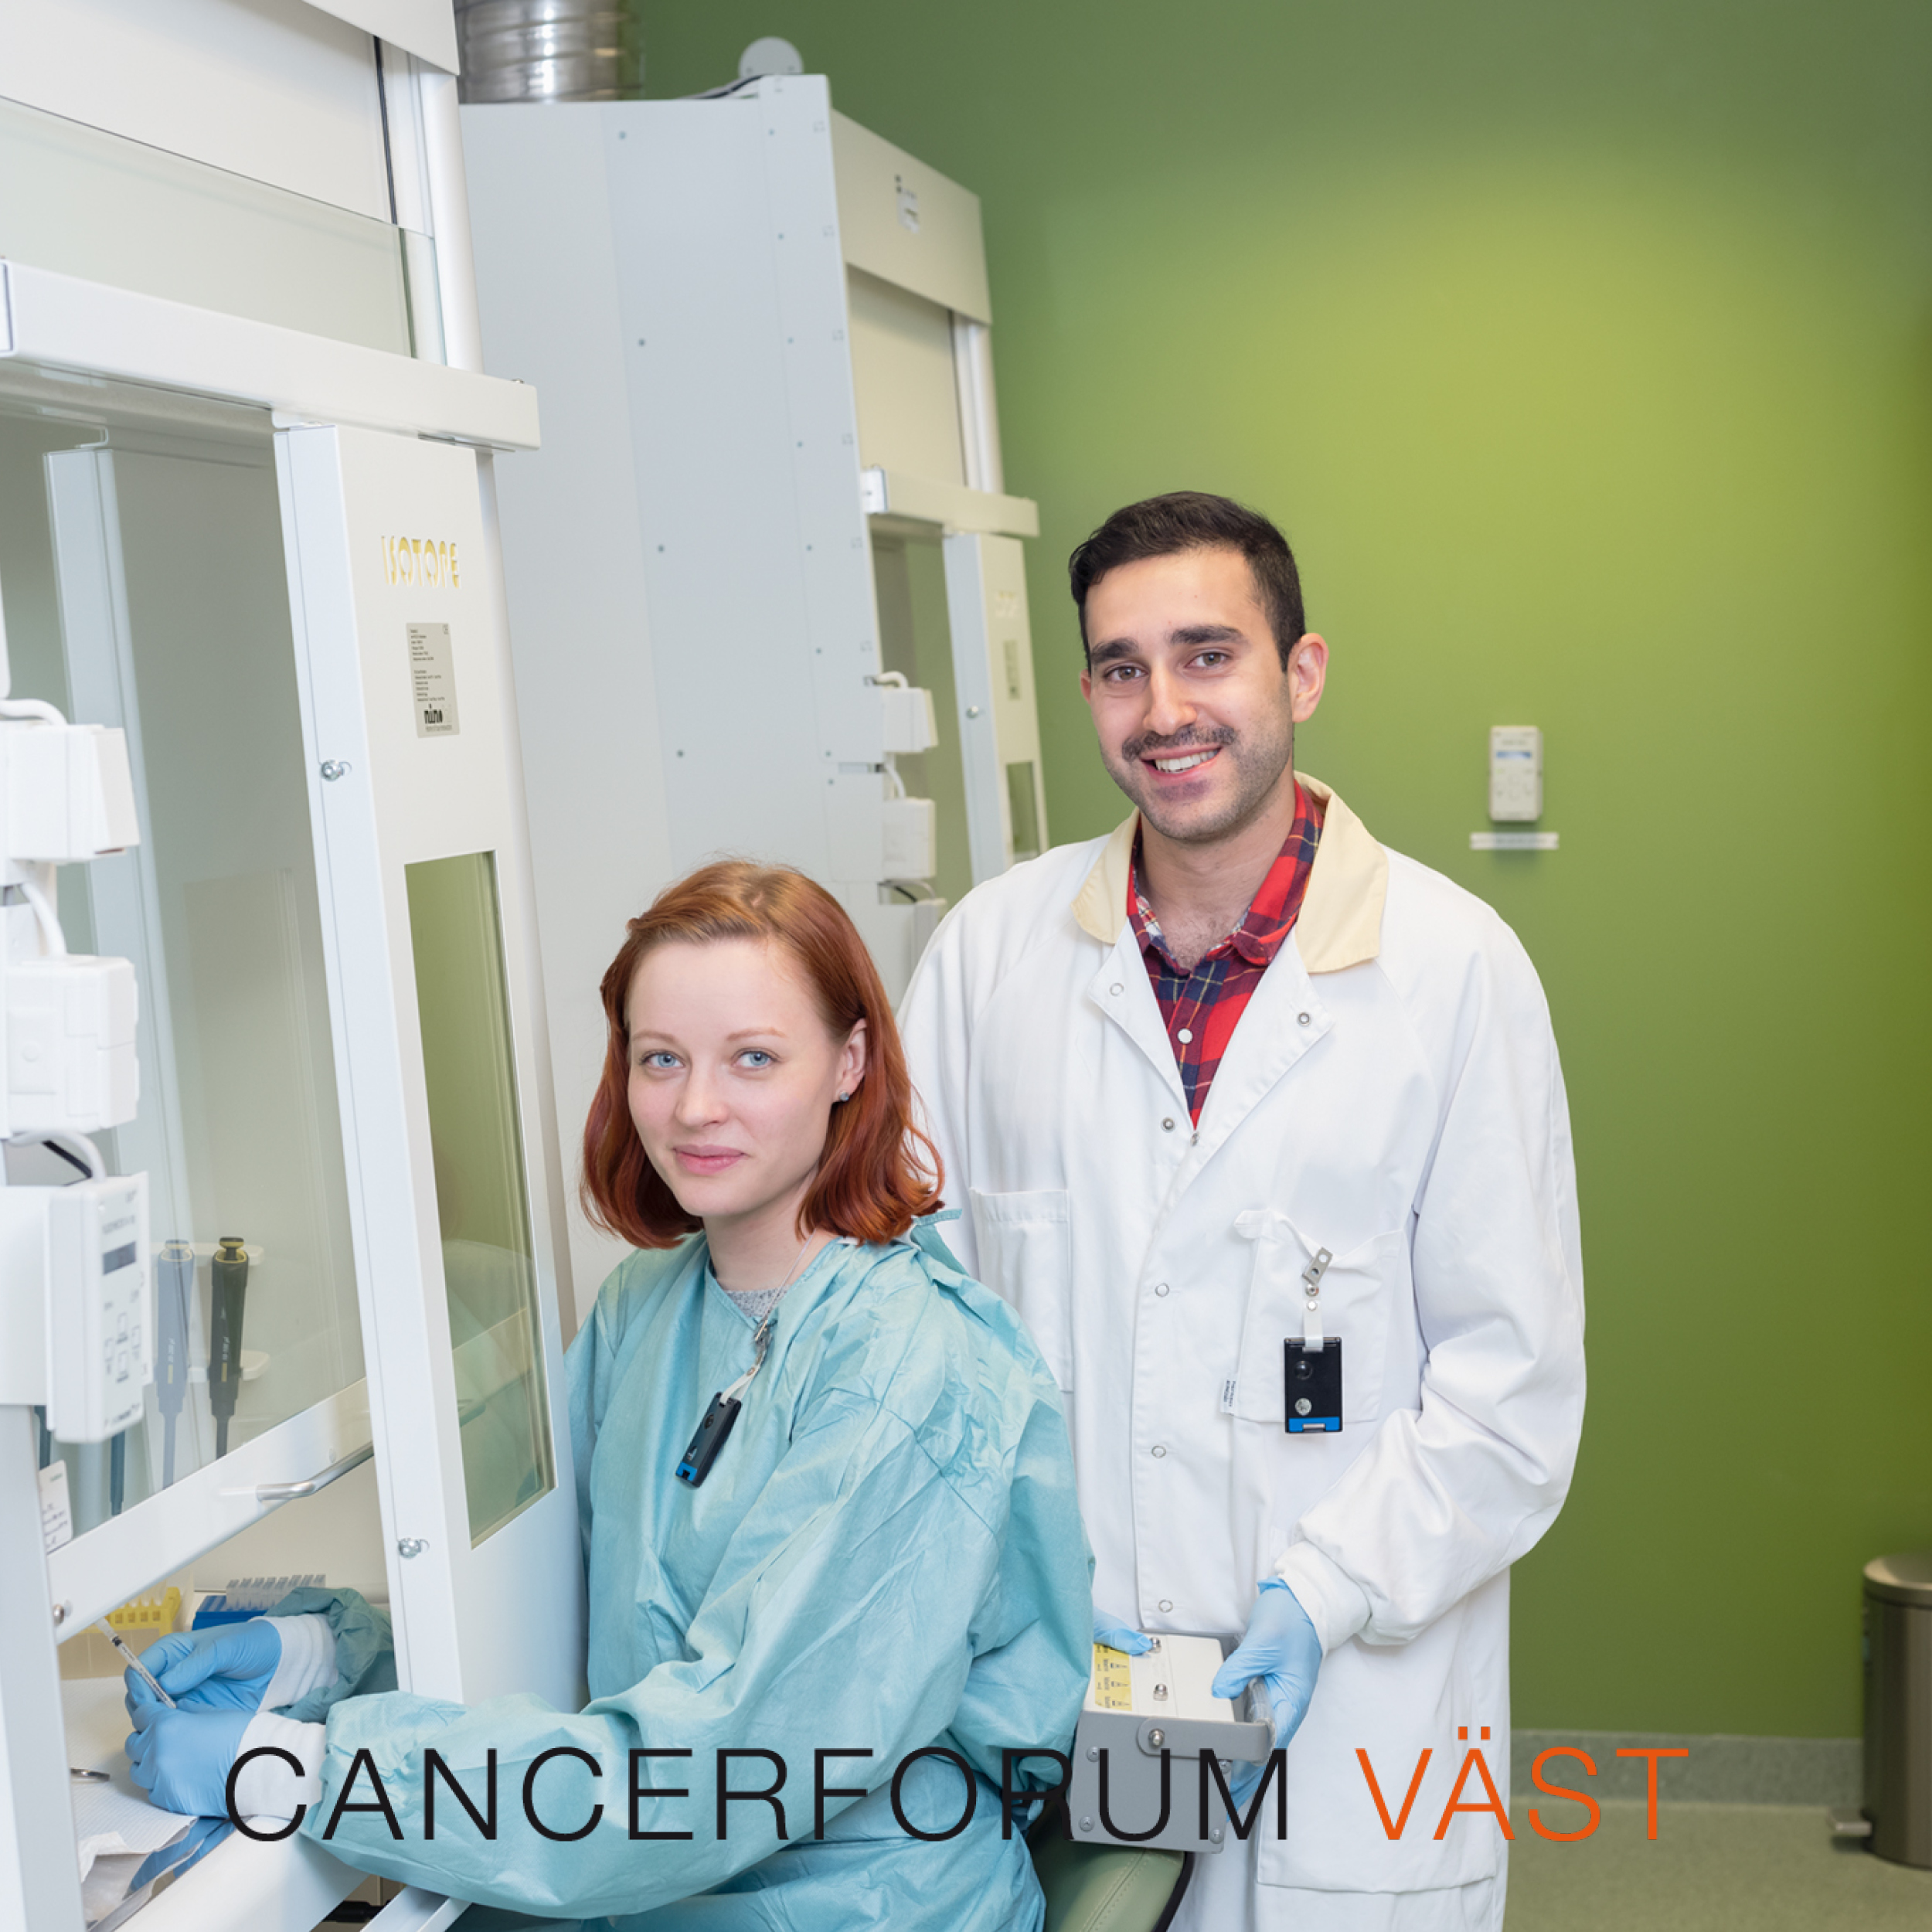 Cancerforum Väst